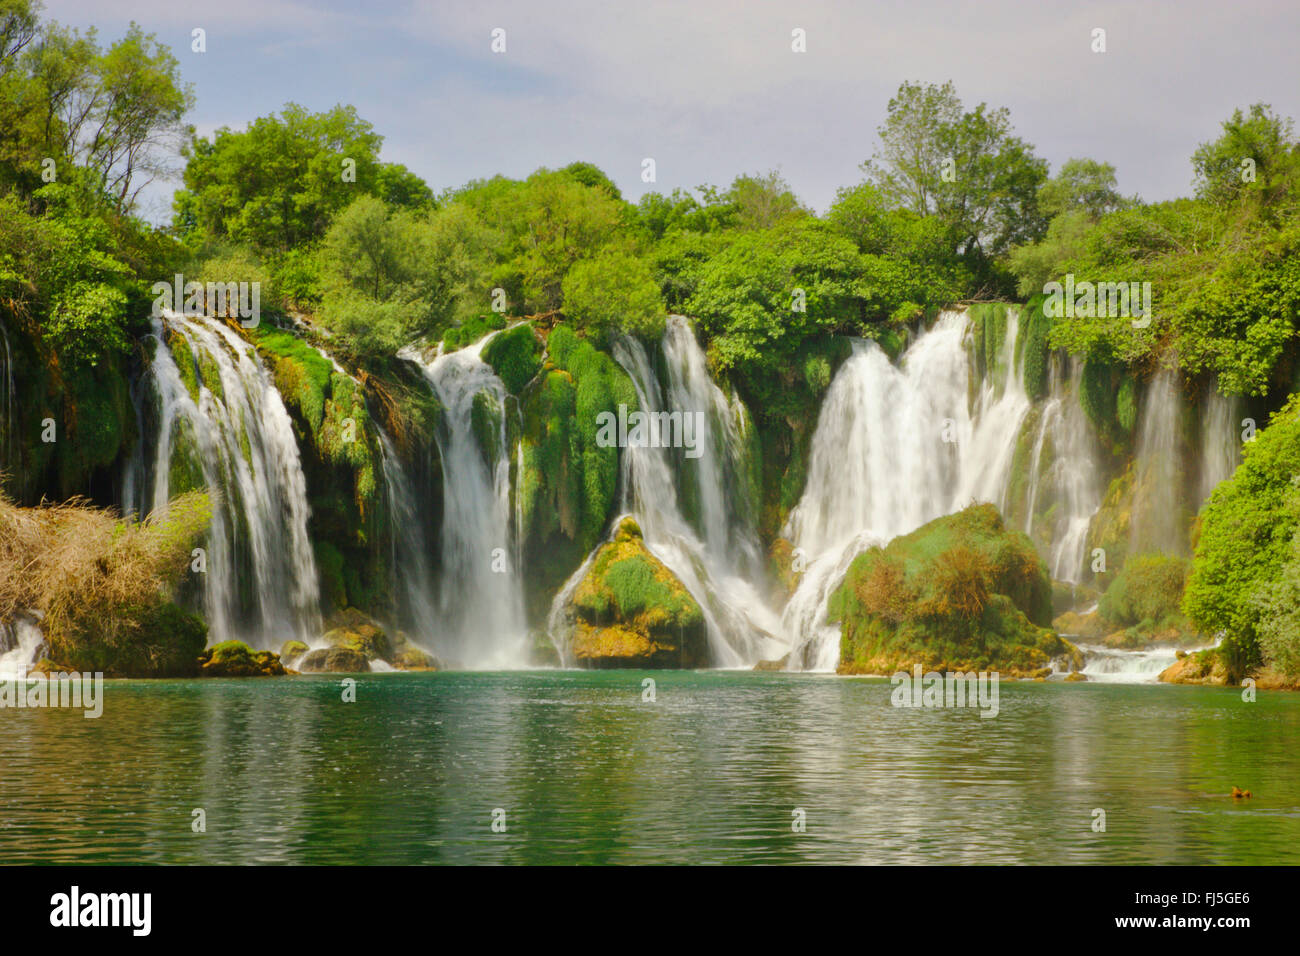 Kravice waterfalls, Bosnia and Herzegovina, Ljubuski - Stock Image